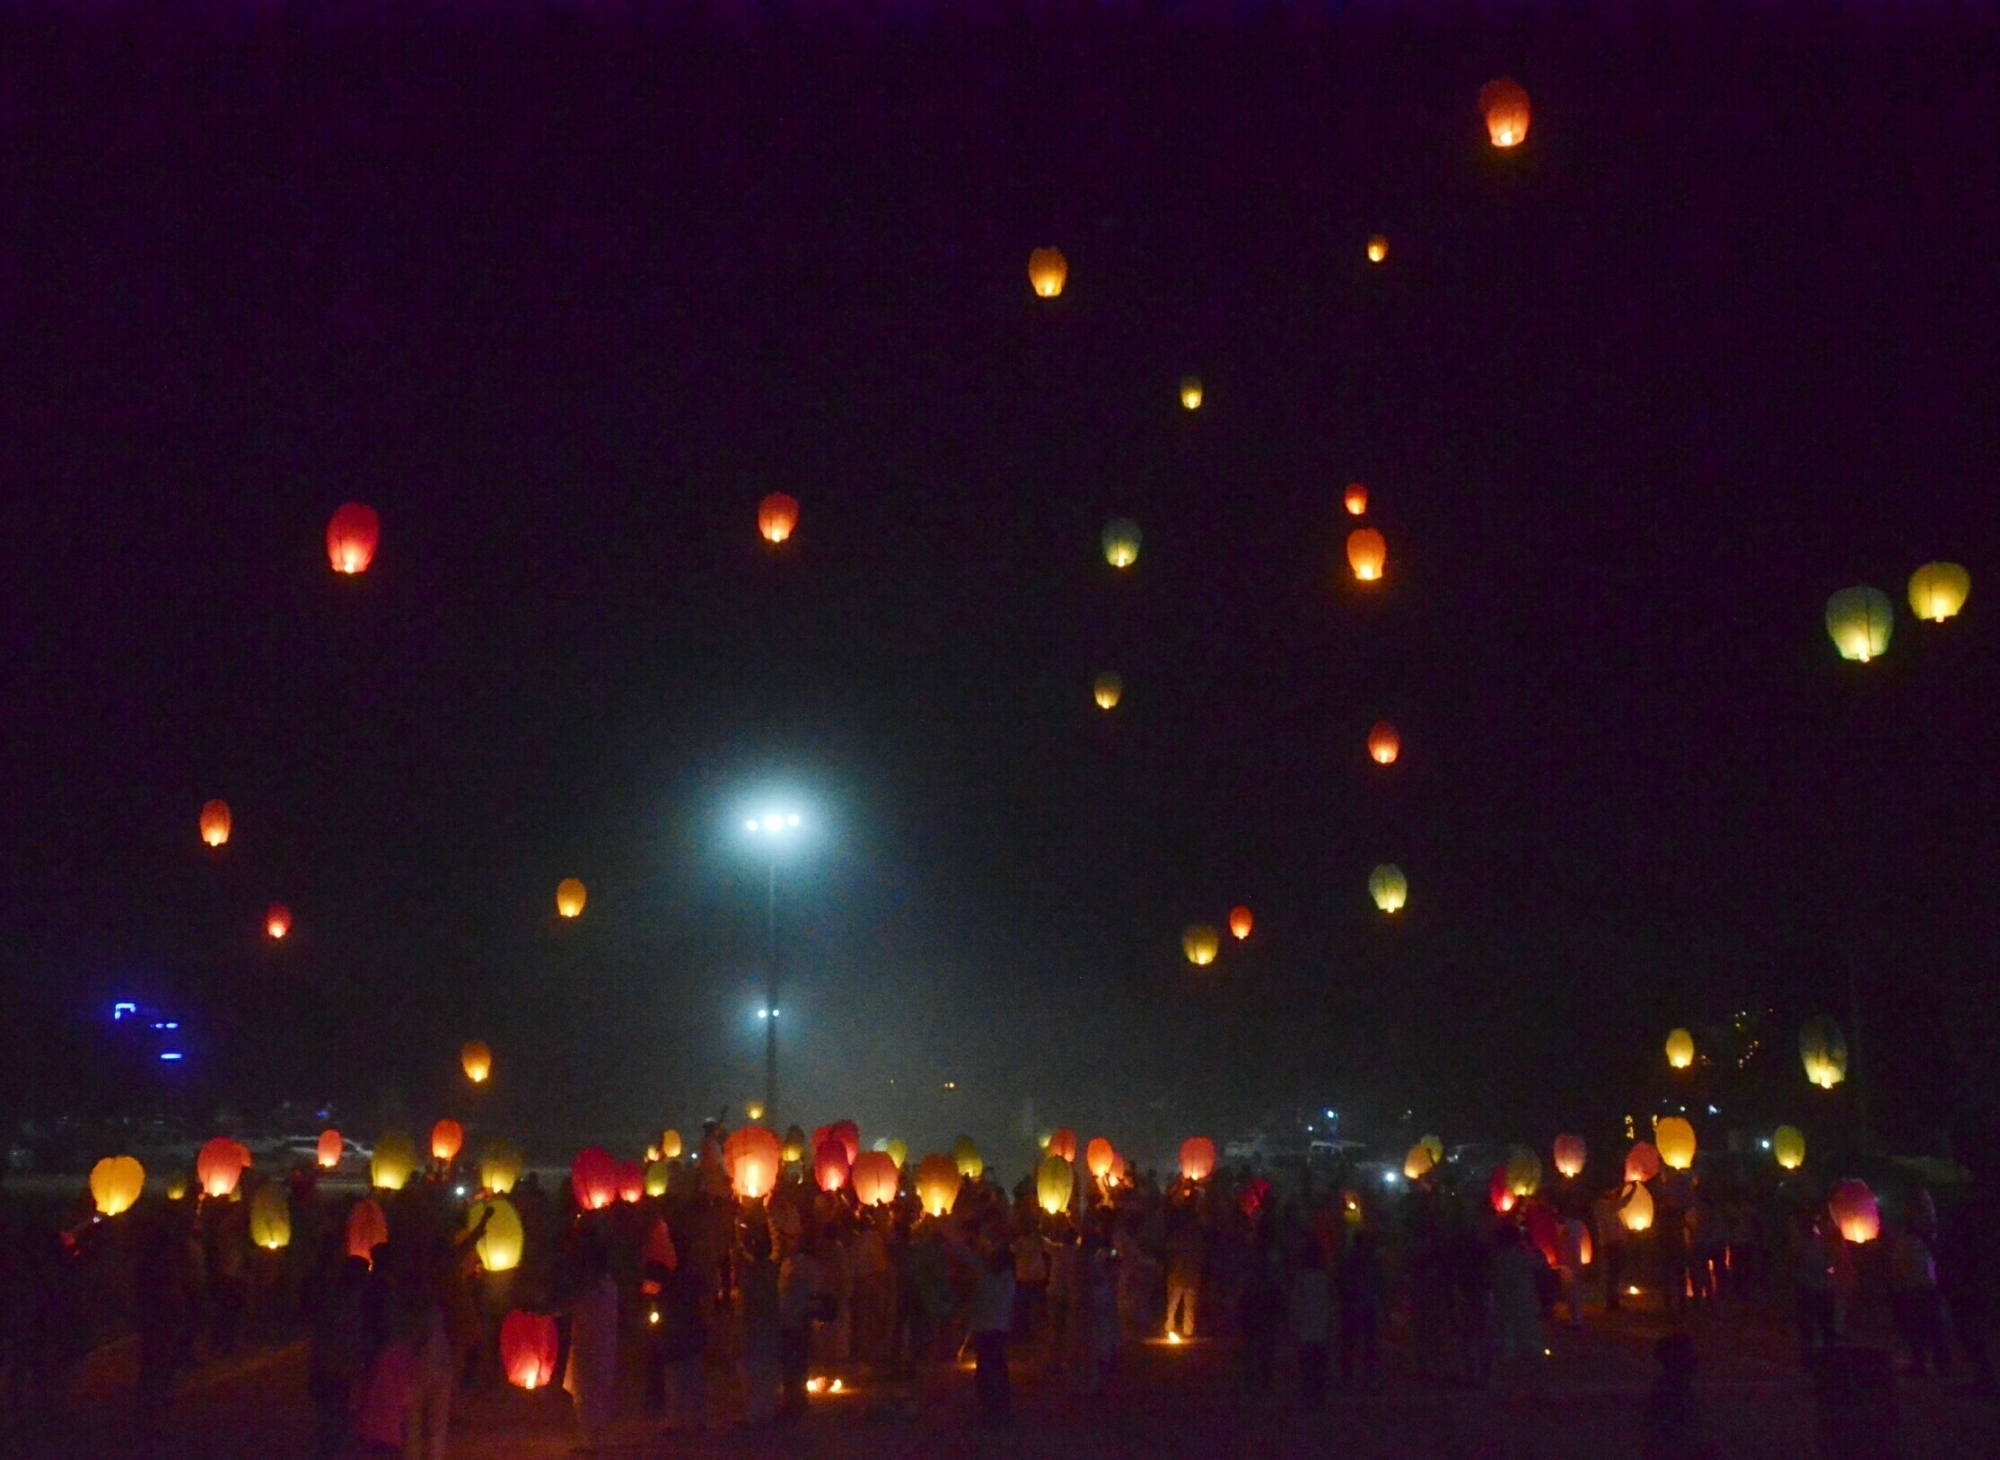 People release sky lanterns in Ghaziabad. (Credit: IANS)